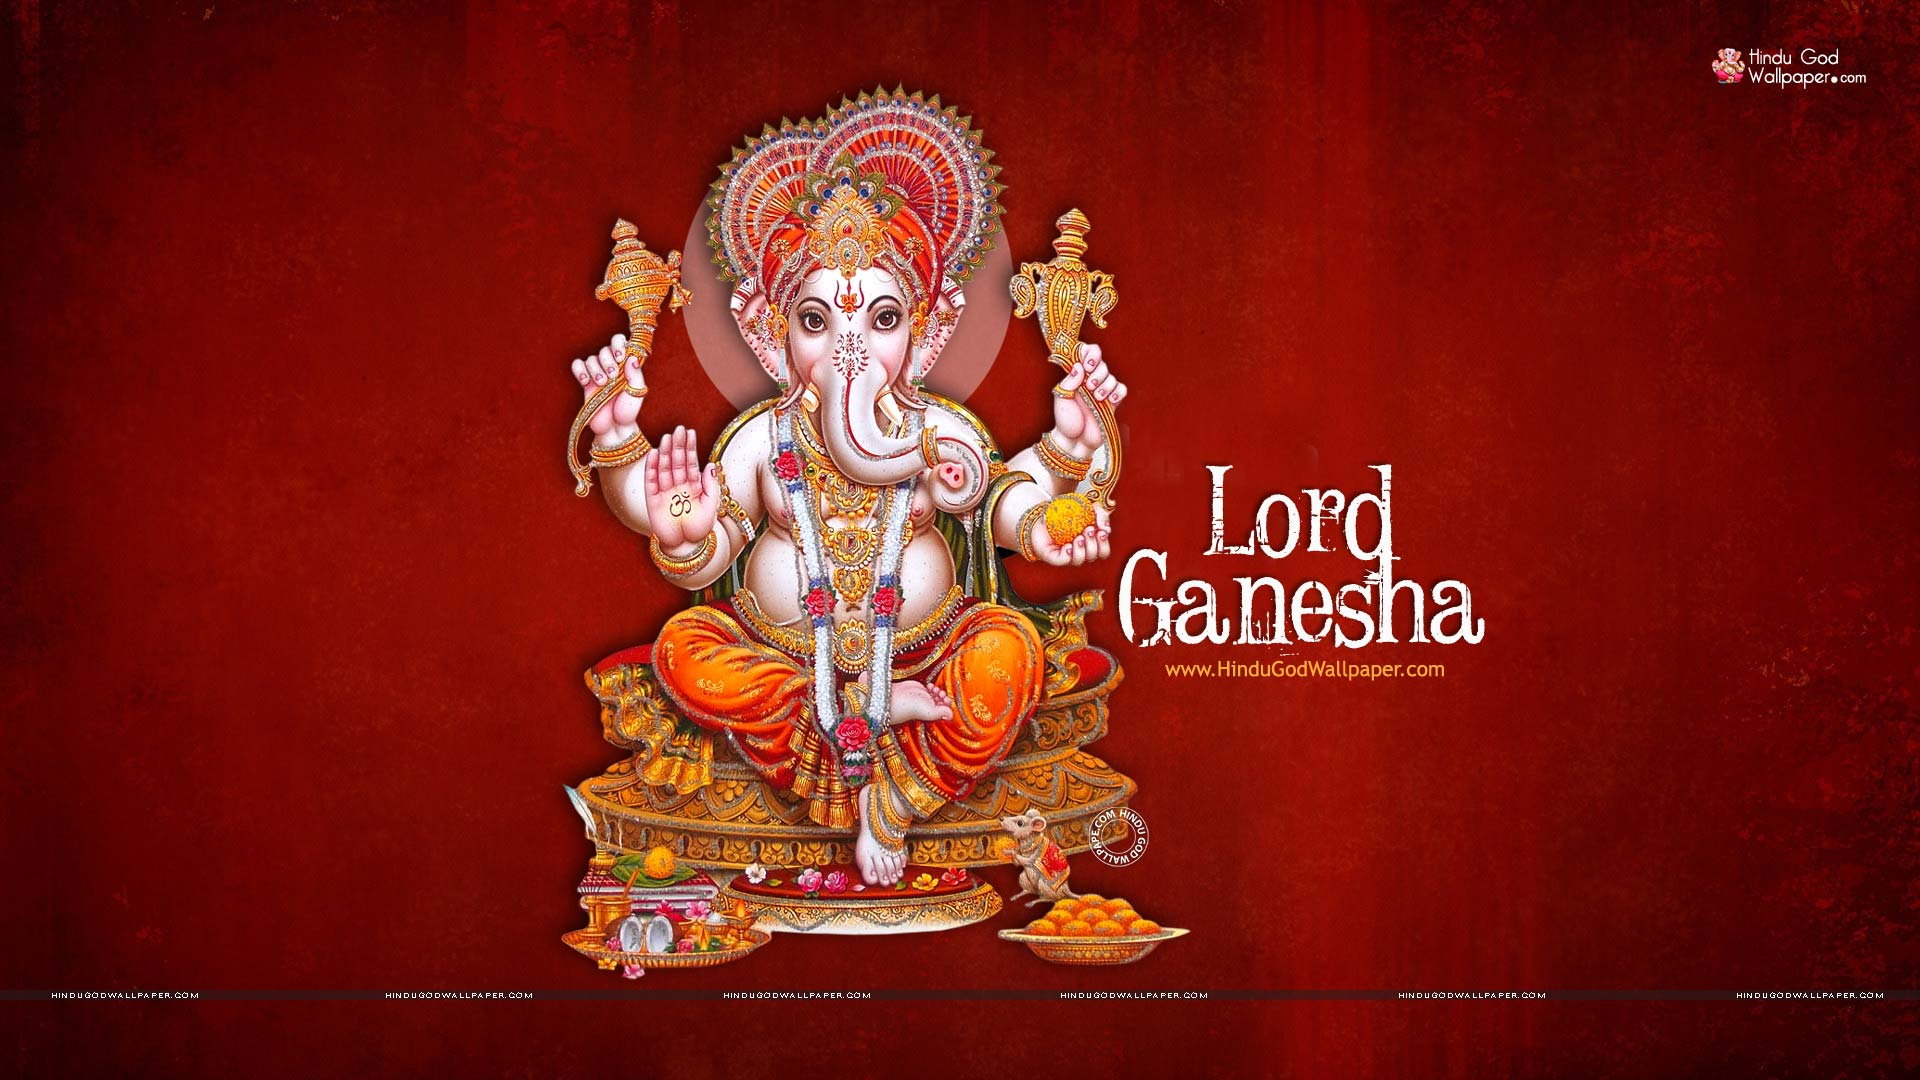 1080p lord ganesha hd